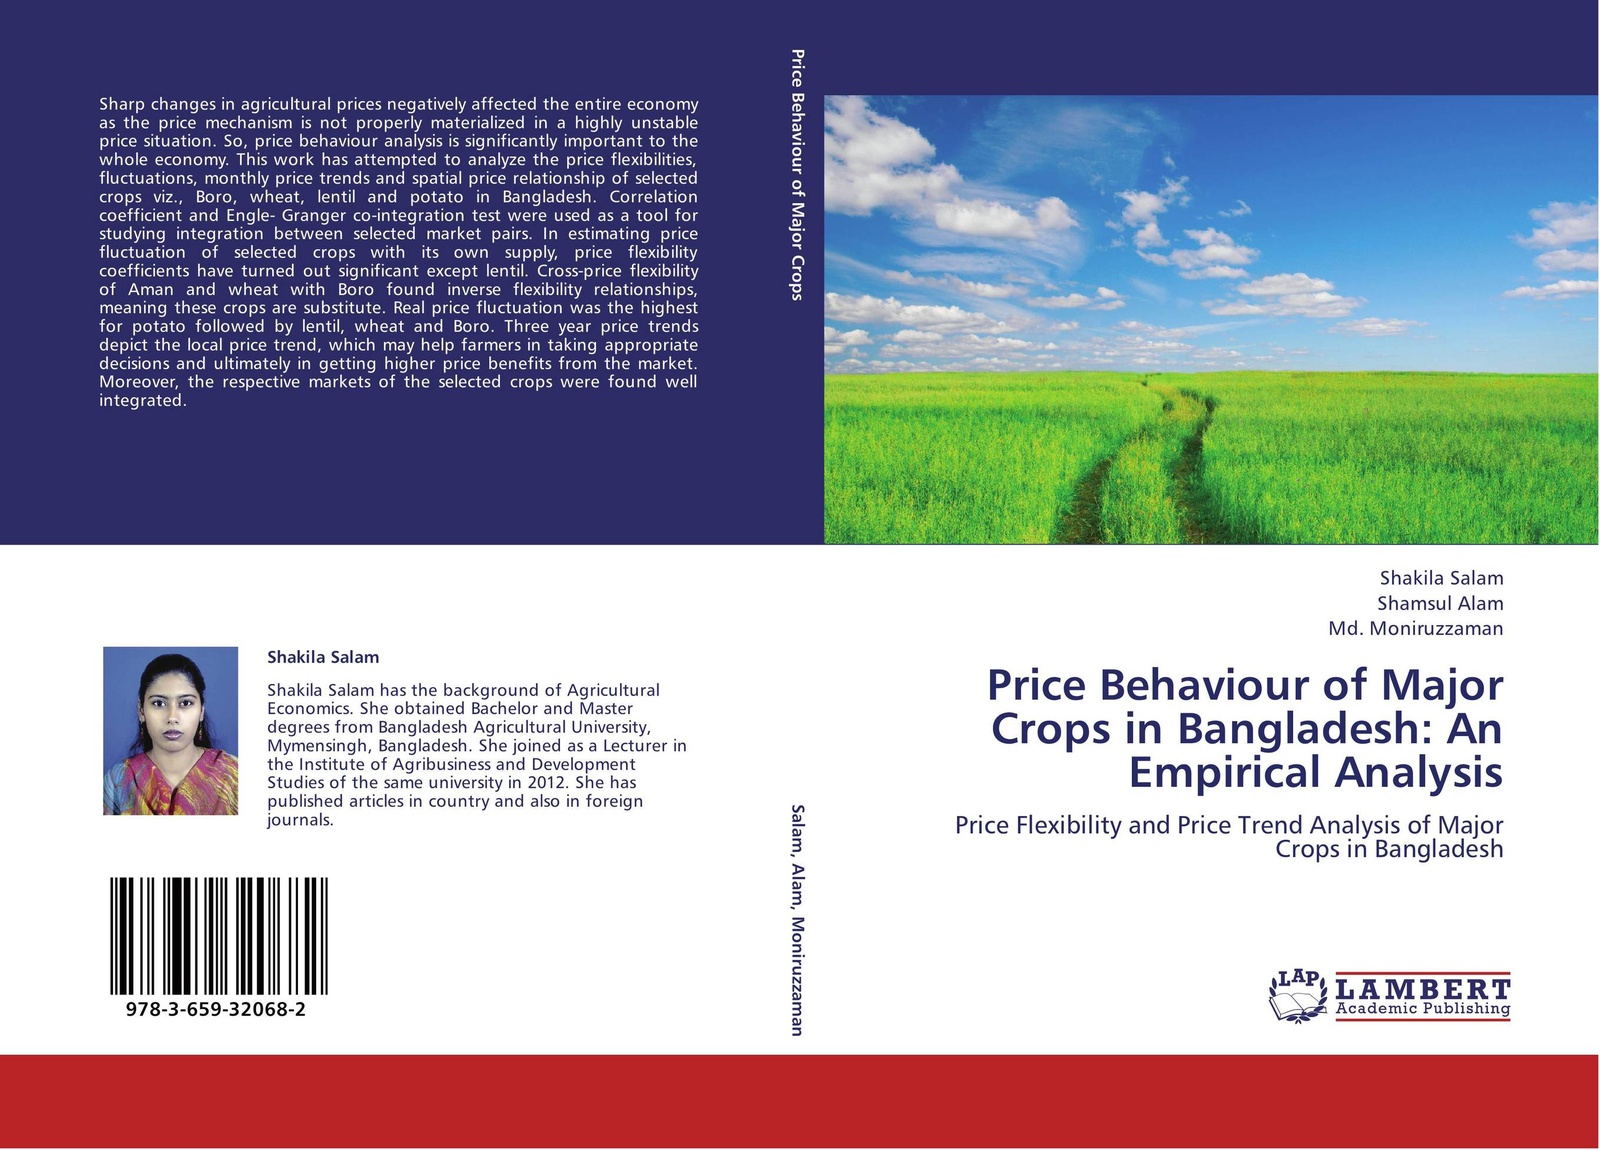 Shakila Salam,Shamsul Alam and Md. Moniruzzaman Price Behaviour of Major Crops in Bangladesh: An Empirical Analysis halil kiymaz market microstructure in emerging and developed markets price discovery information flows and transaction costs